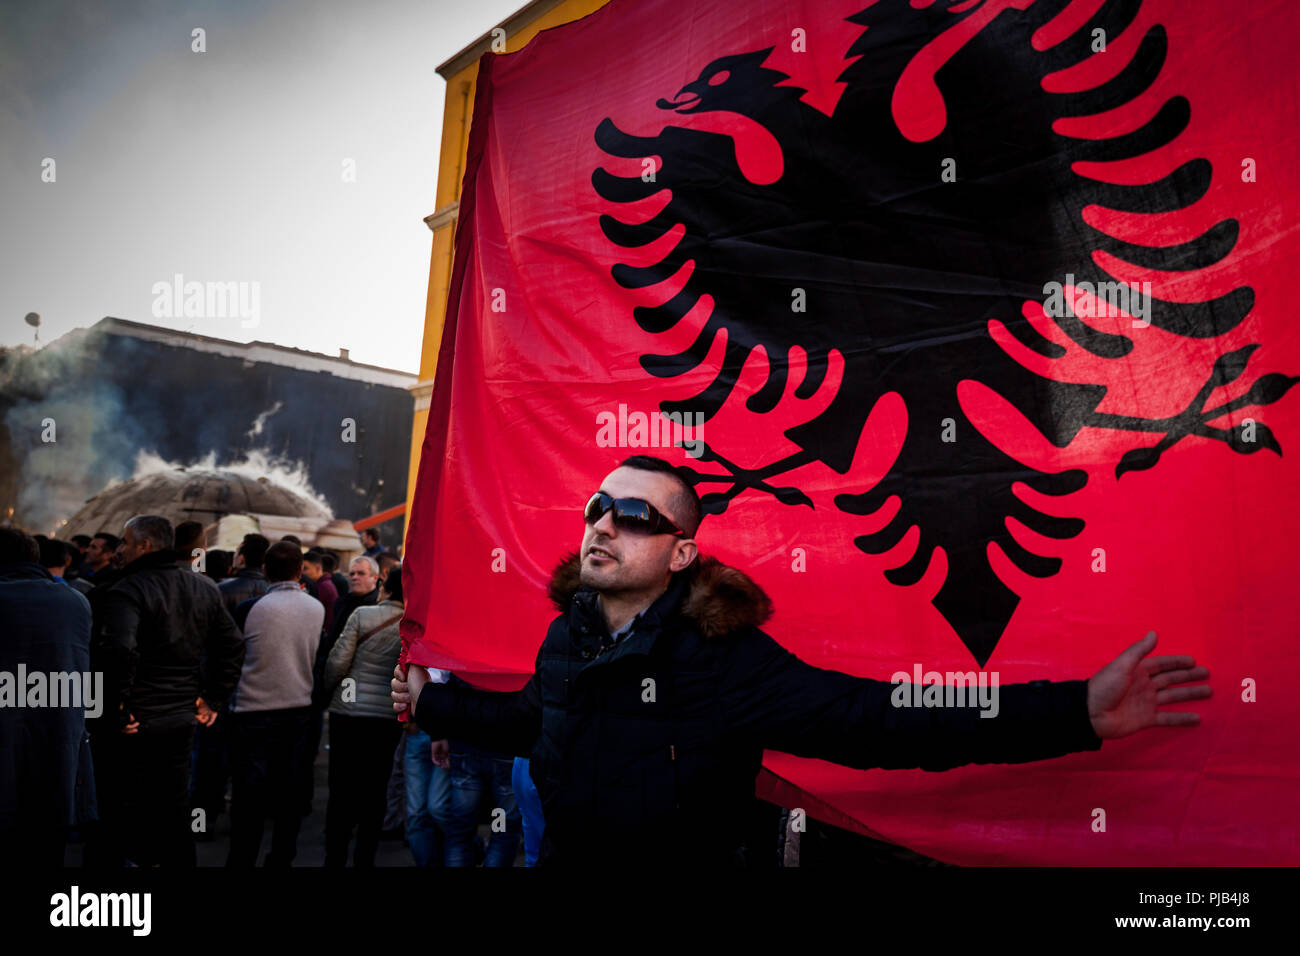 Citizen protests against the construction of a bunker next to the Ministry of Infrastructure at Skanderbeg Square in Tirana, Albania. - Stock Image